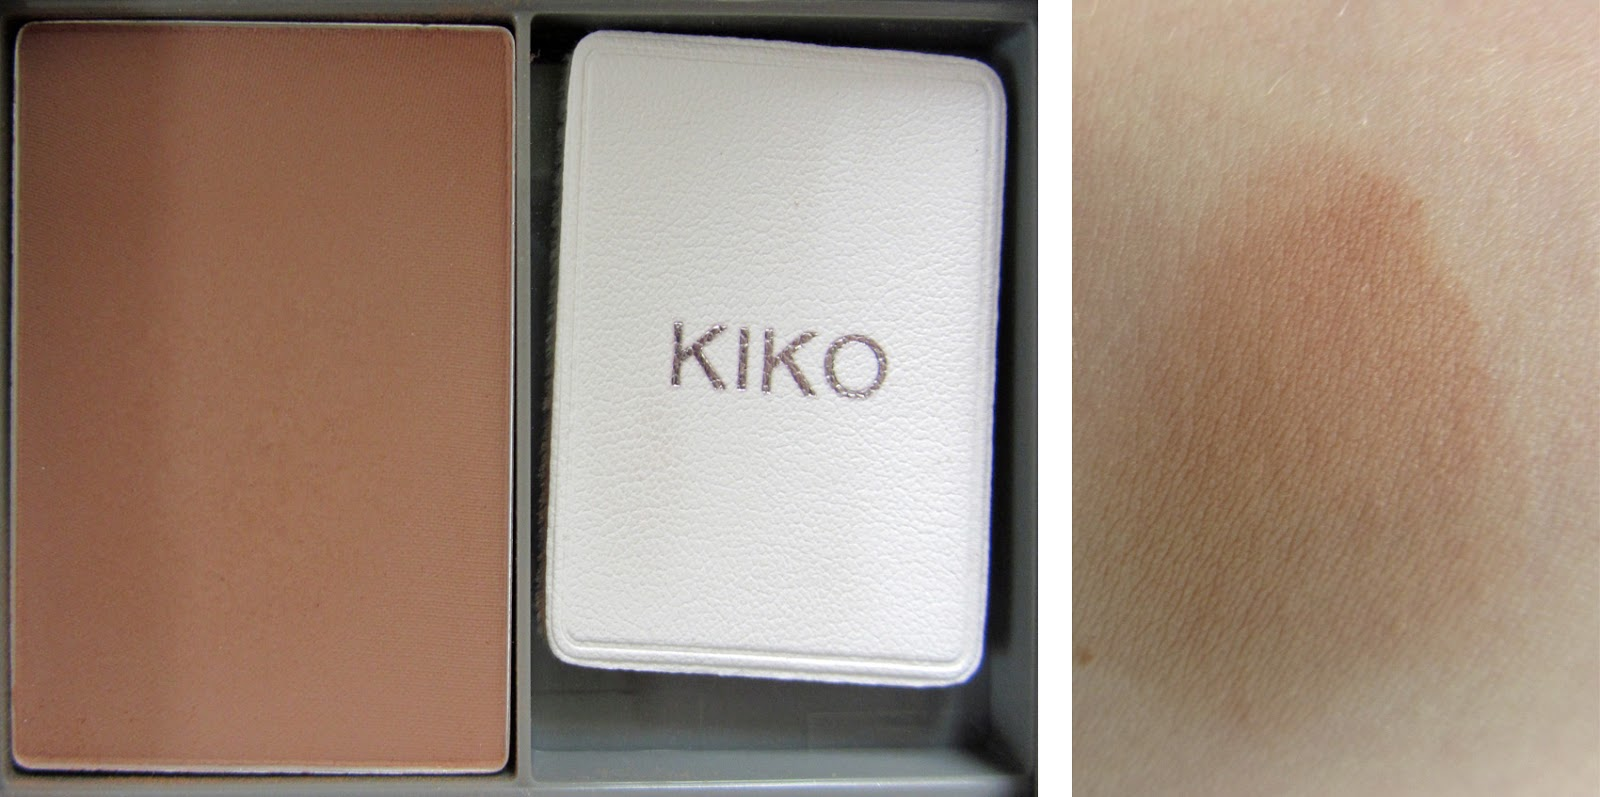 Review kiko total look palette 02 exquisite night - Gesicht konturieren produkte ...